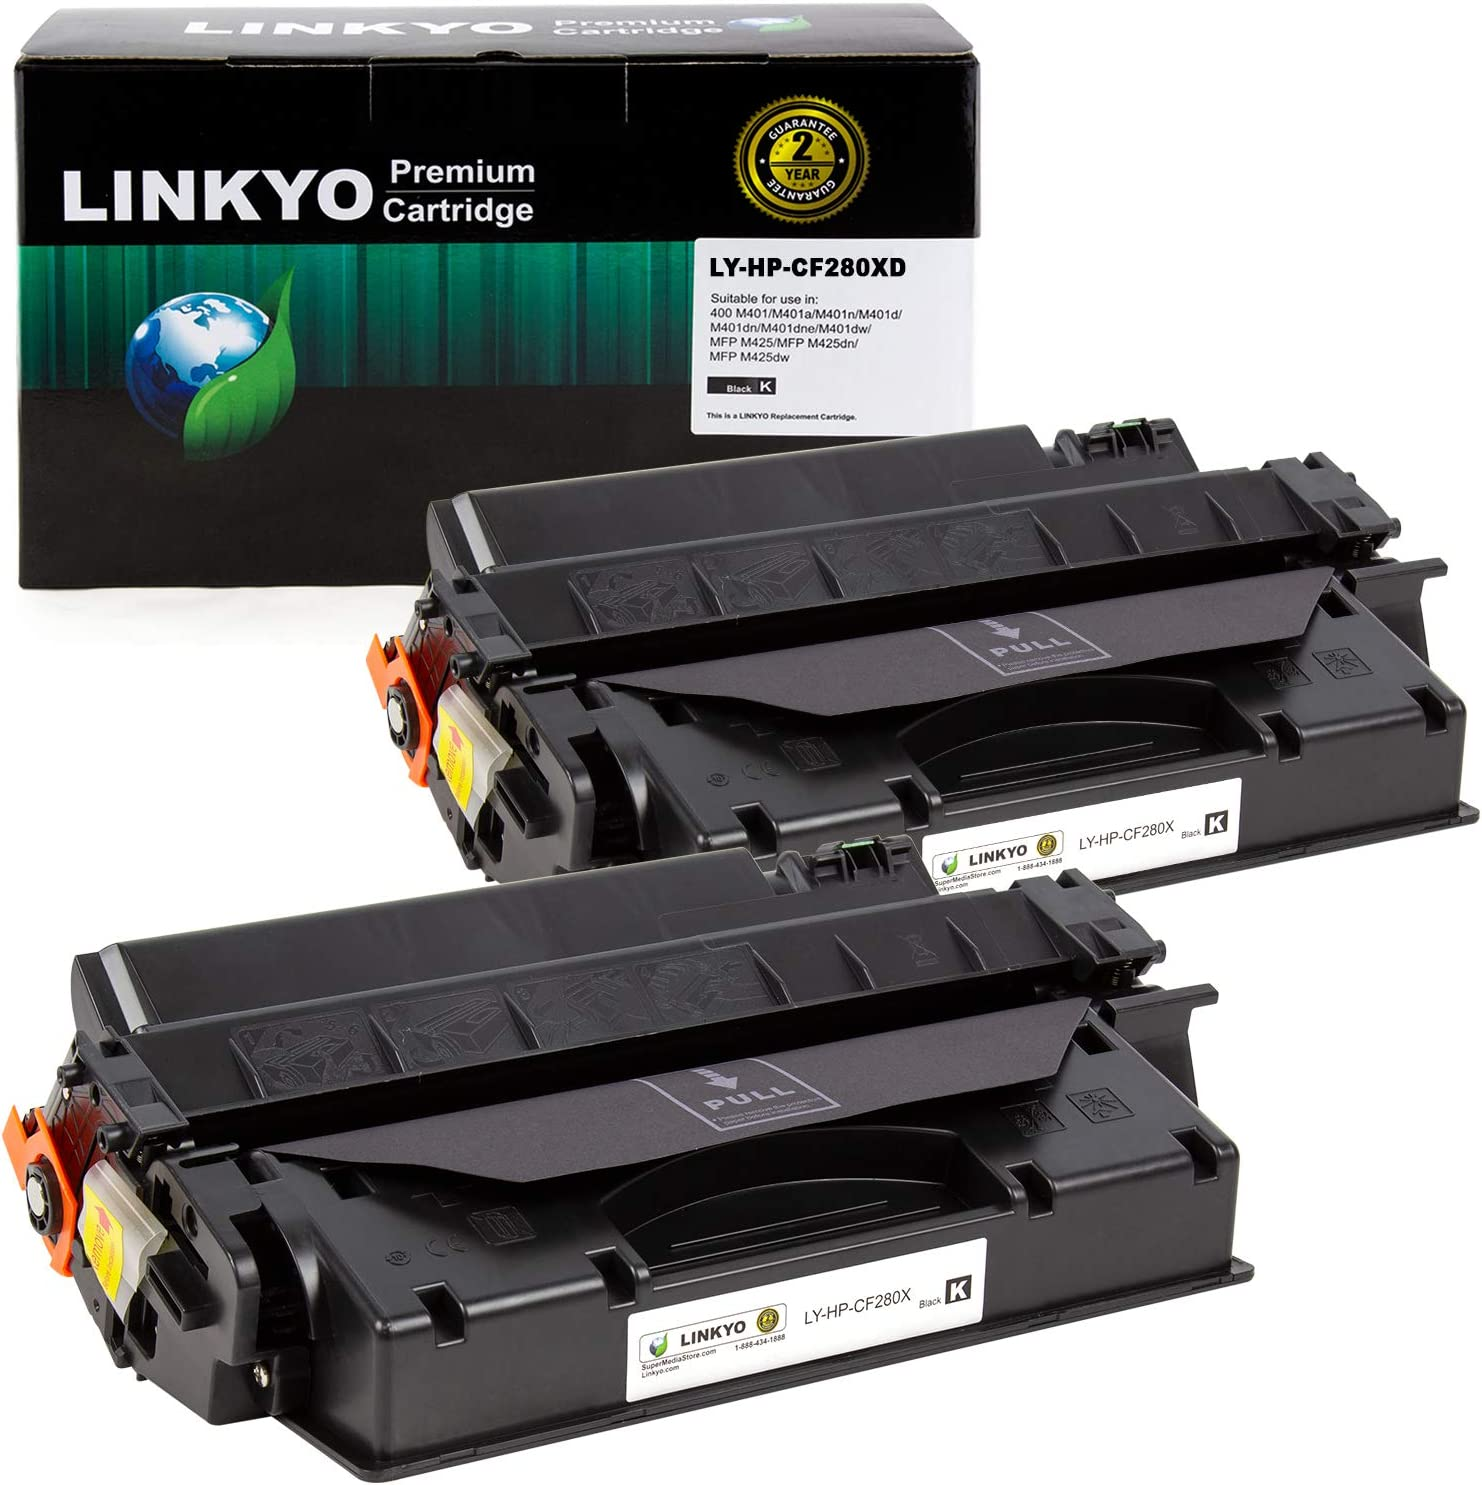 LINKYO Compatible Toner Cartridge Replacement for HP 80X CF280X (Black, High Yield, 2-Pack)